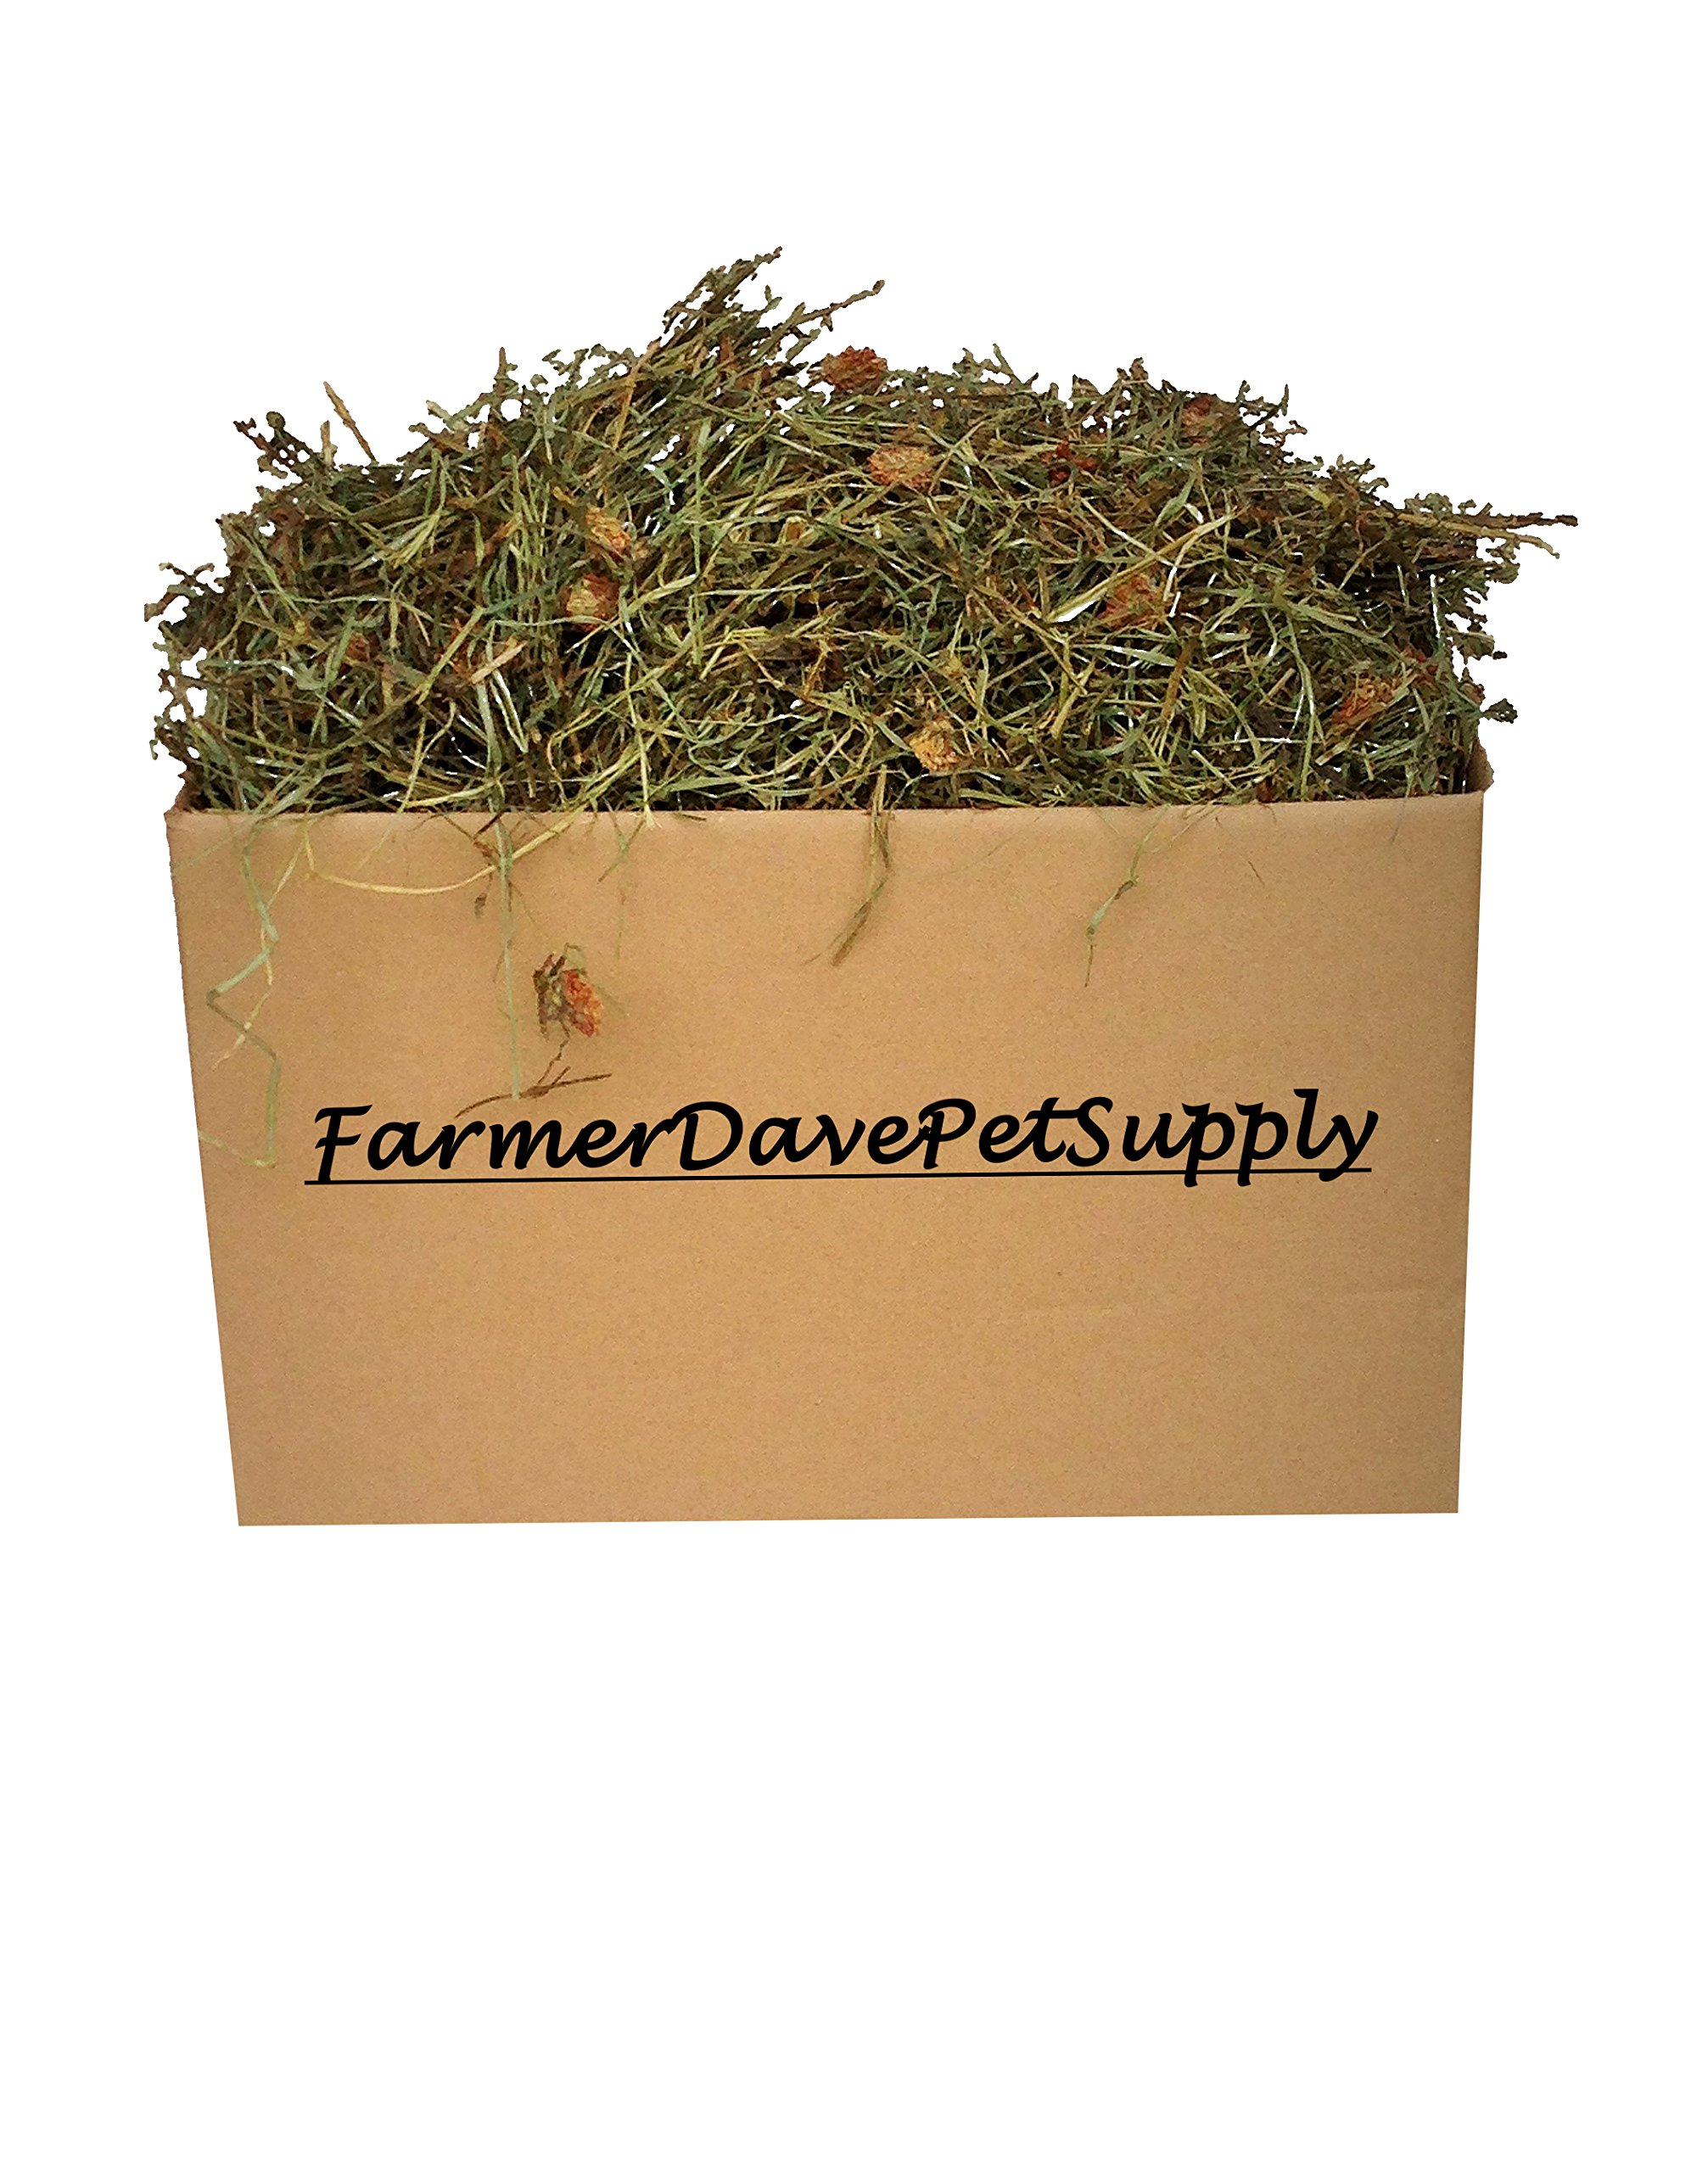 FarmerDavePetSupply 10 Lb. Premium 2nd Cut Timothy Hay with Clover, Bunny, and Small Animal Pet HAY-in-A-Box by FarmerDavePetSupply